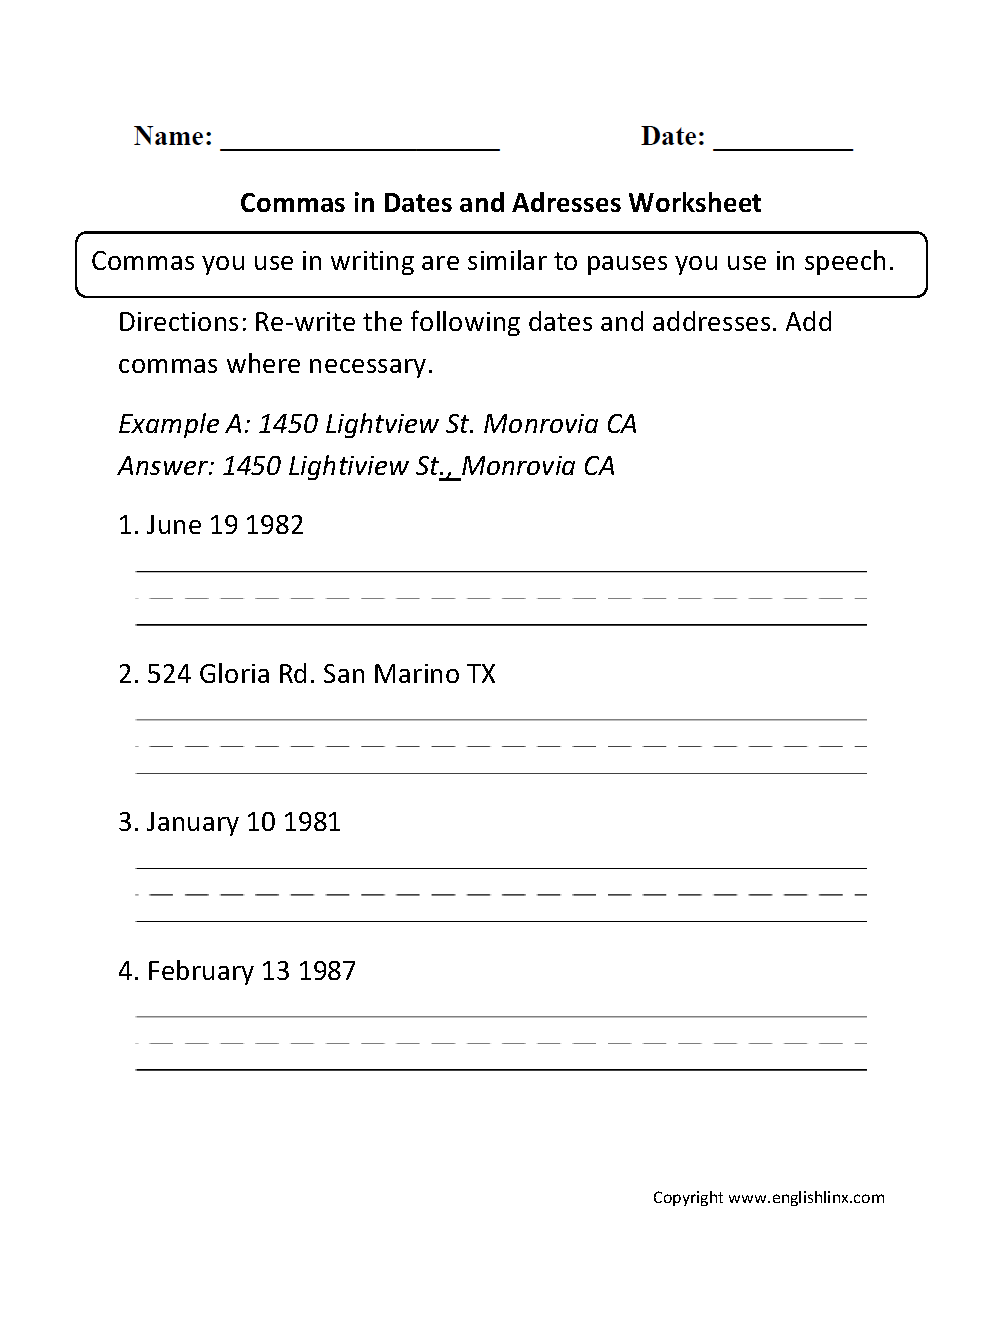 Commas Worksheets – Using Commas Worksheet